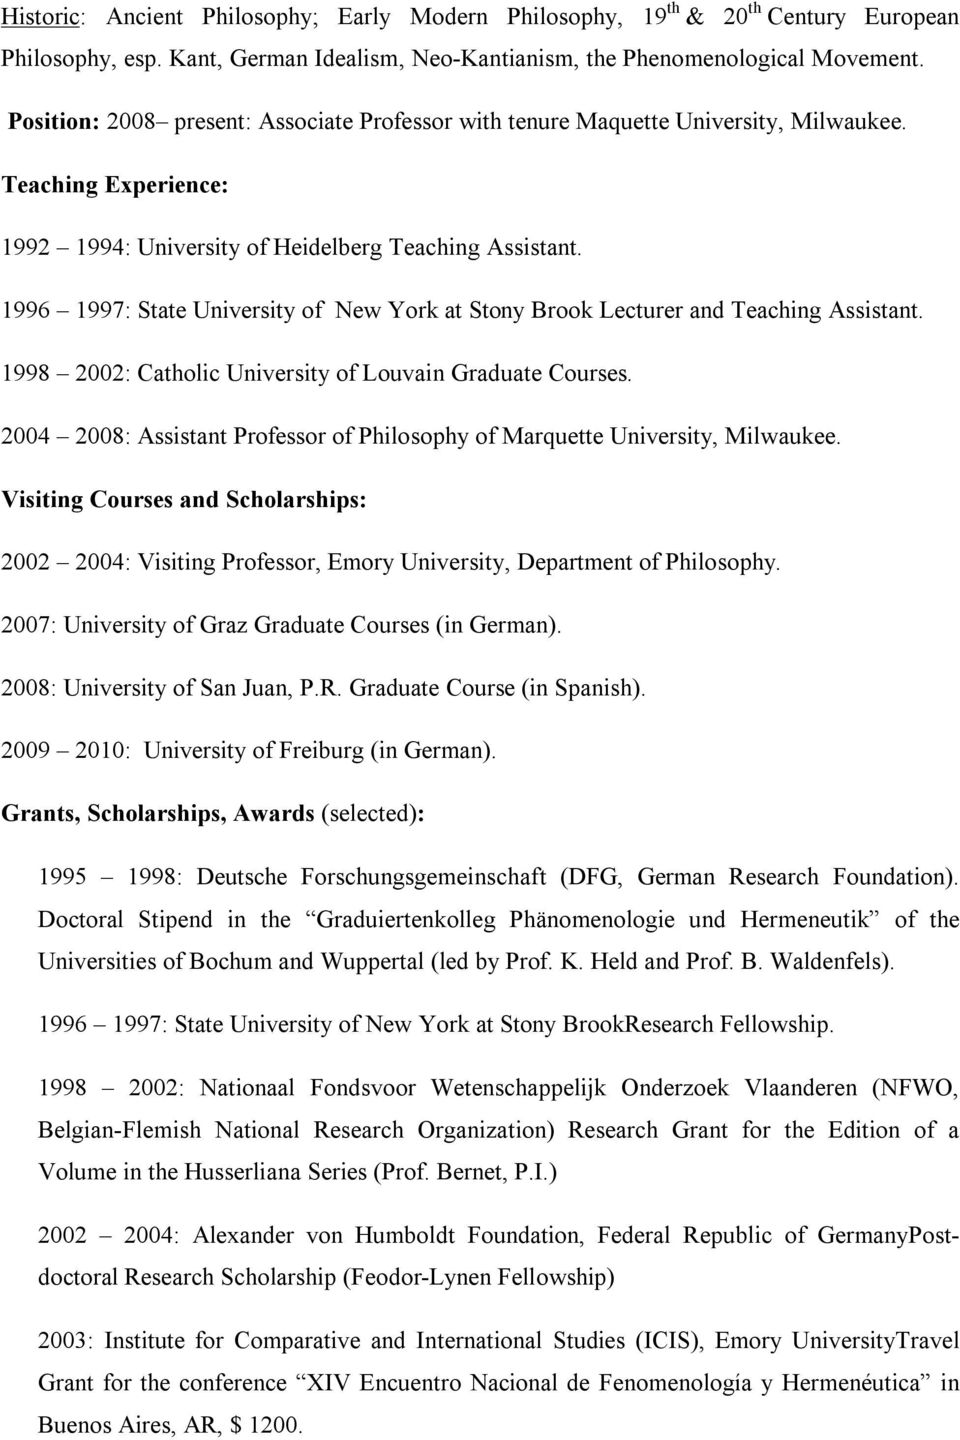 1996 1997: State University of New York at Stony Brook Lecturer and Teaching Assistant. 1998 2002: Catholic University of Louvain Graduate Courses.